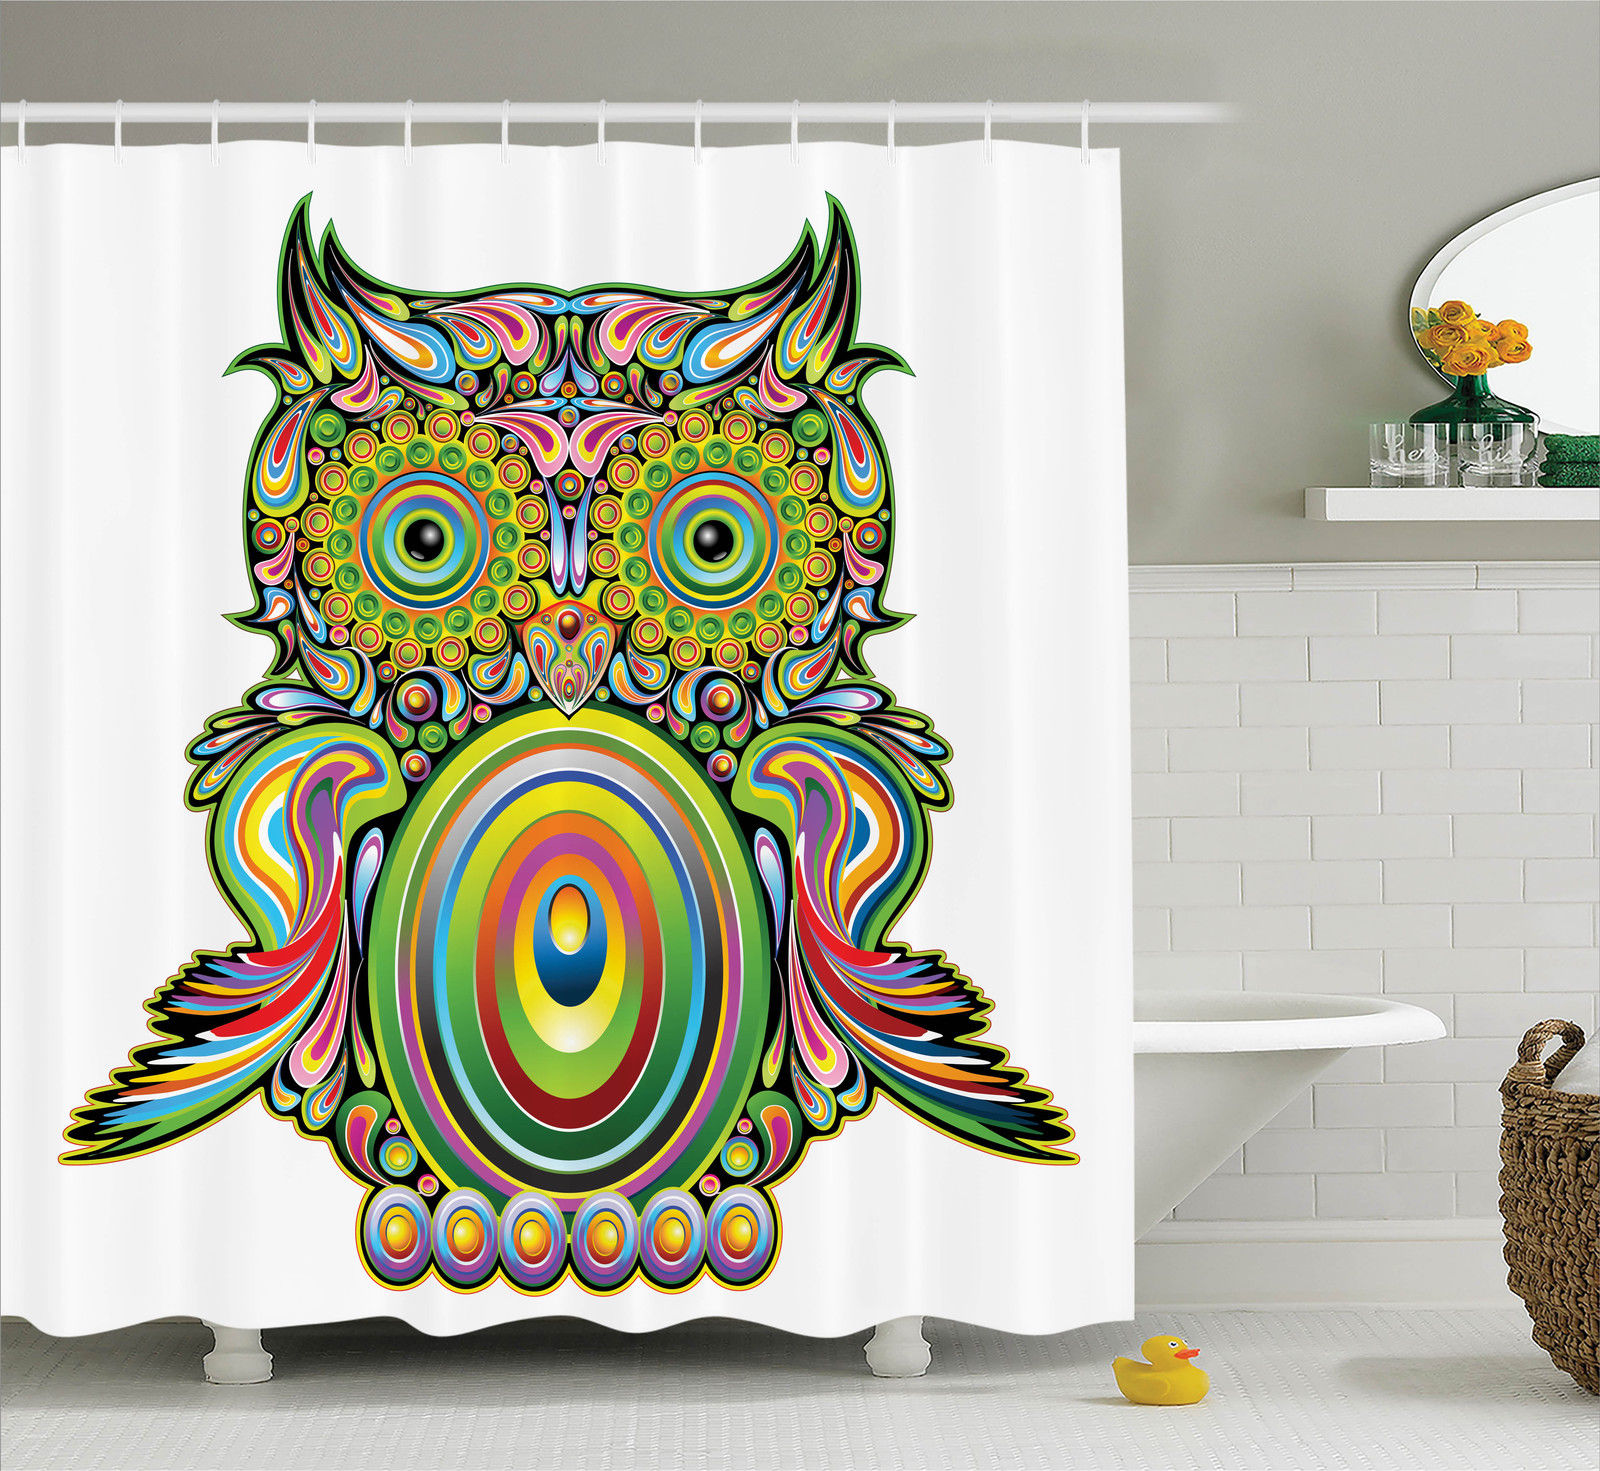 Owls Home Decor Shower Curtain Set, Ornate Colorful Owl With Ethnic Elements Legend Eye Feather Of Universe Psychedelic Artwork, Bathroom Accessories, 69W X 70L Inches, By Ambesonne